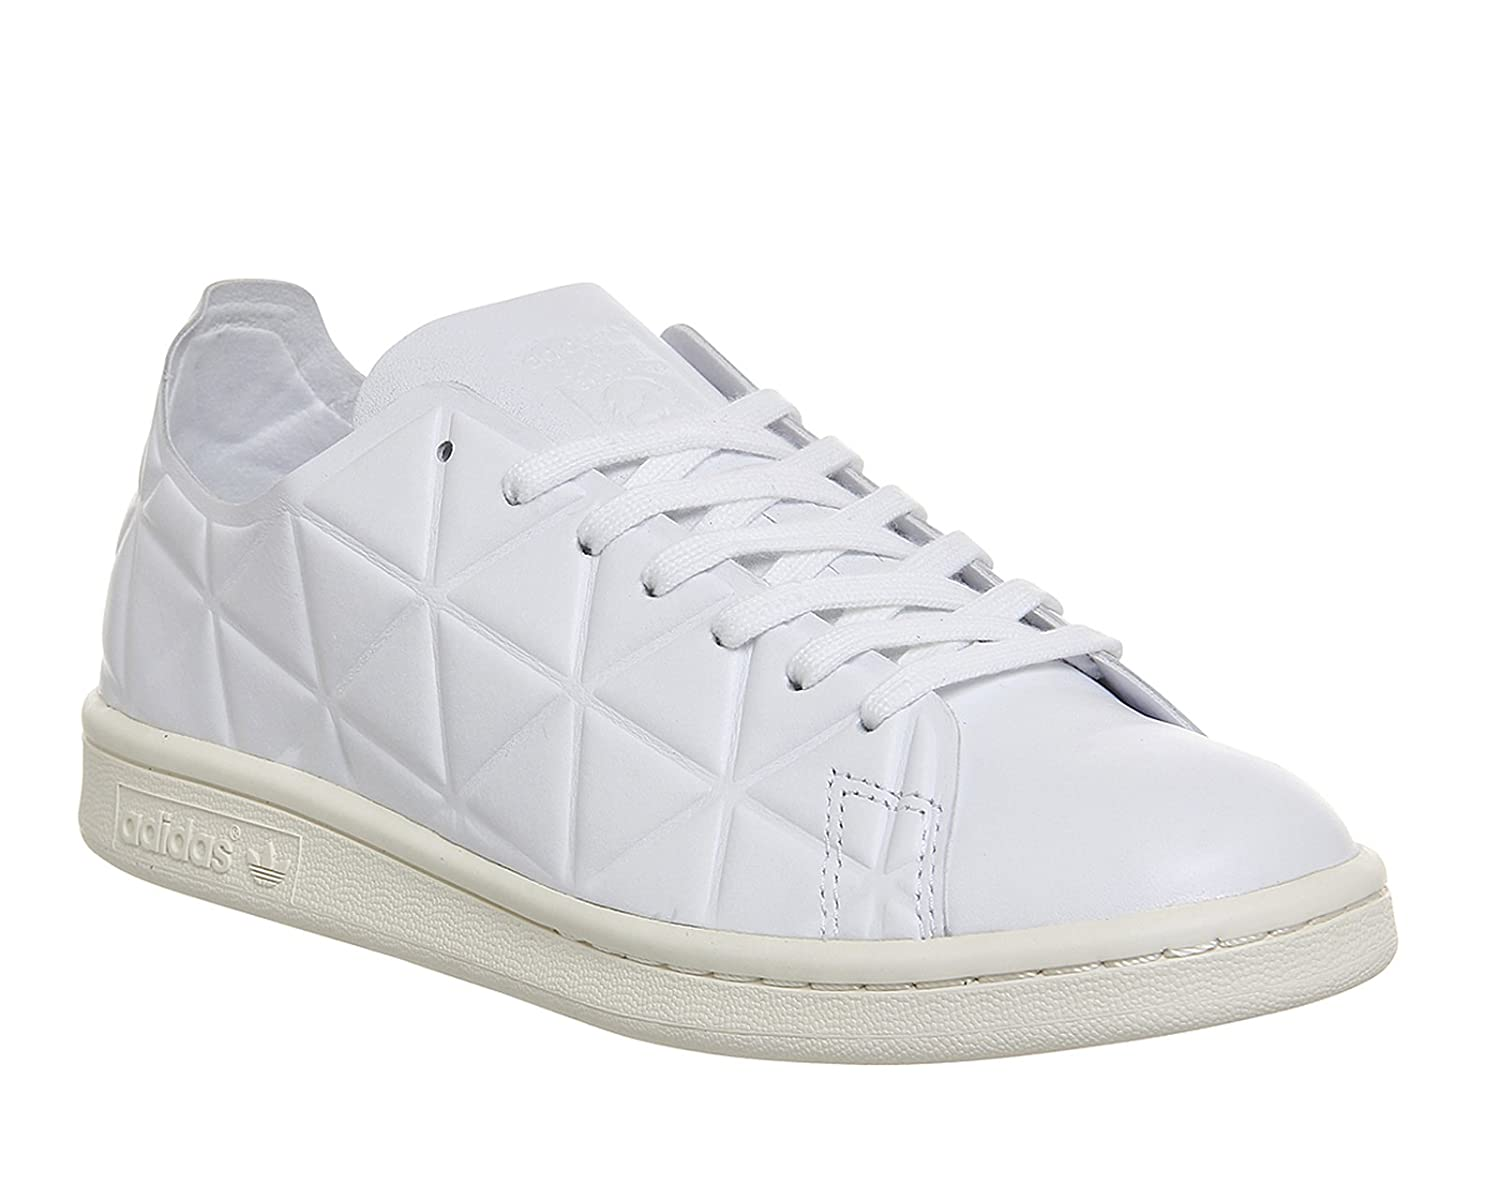 Smith UK Stan 40 7 Damen ADIDAS EU 23 Polygone Sneaker 80PkwnO